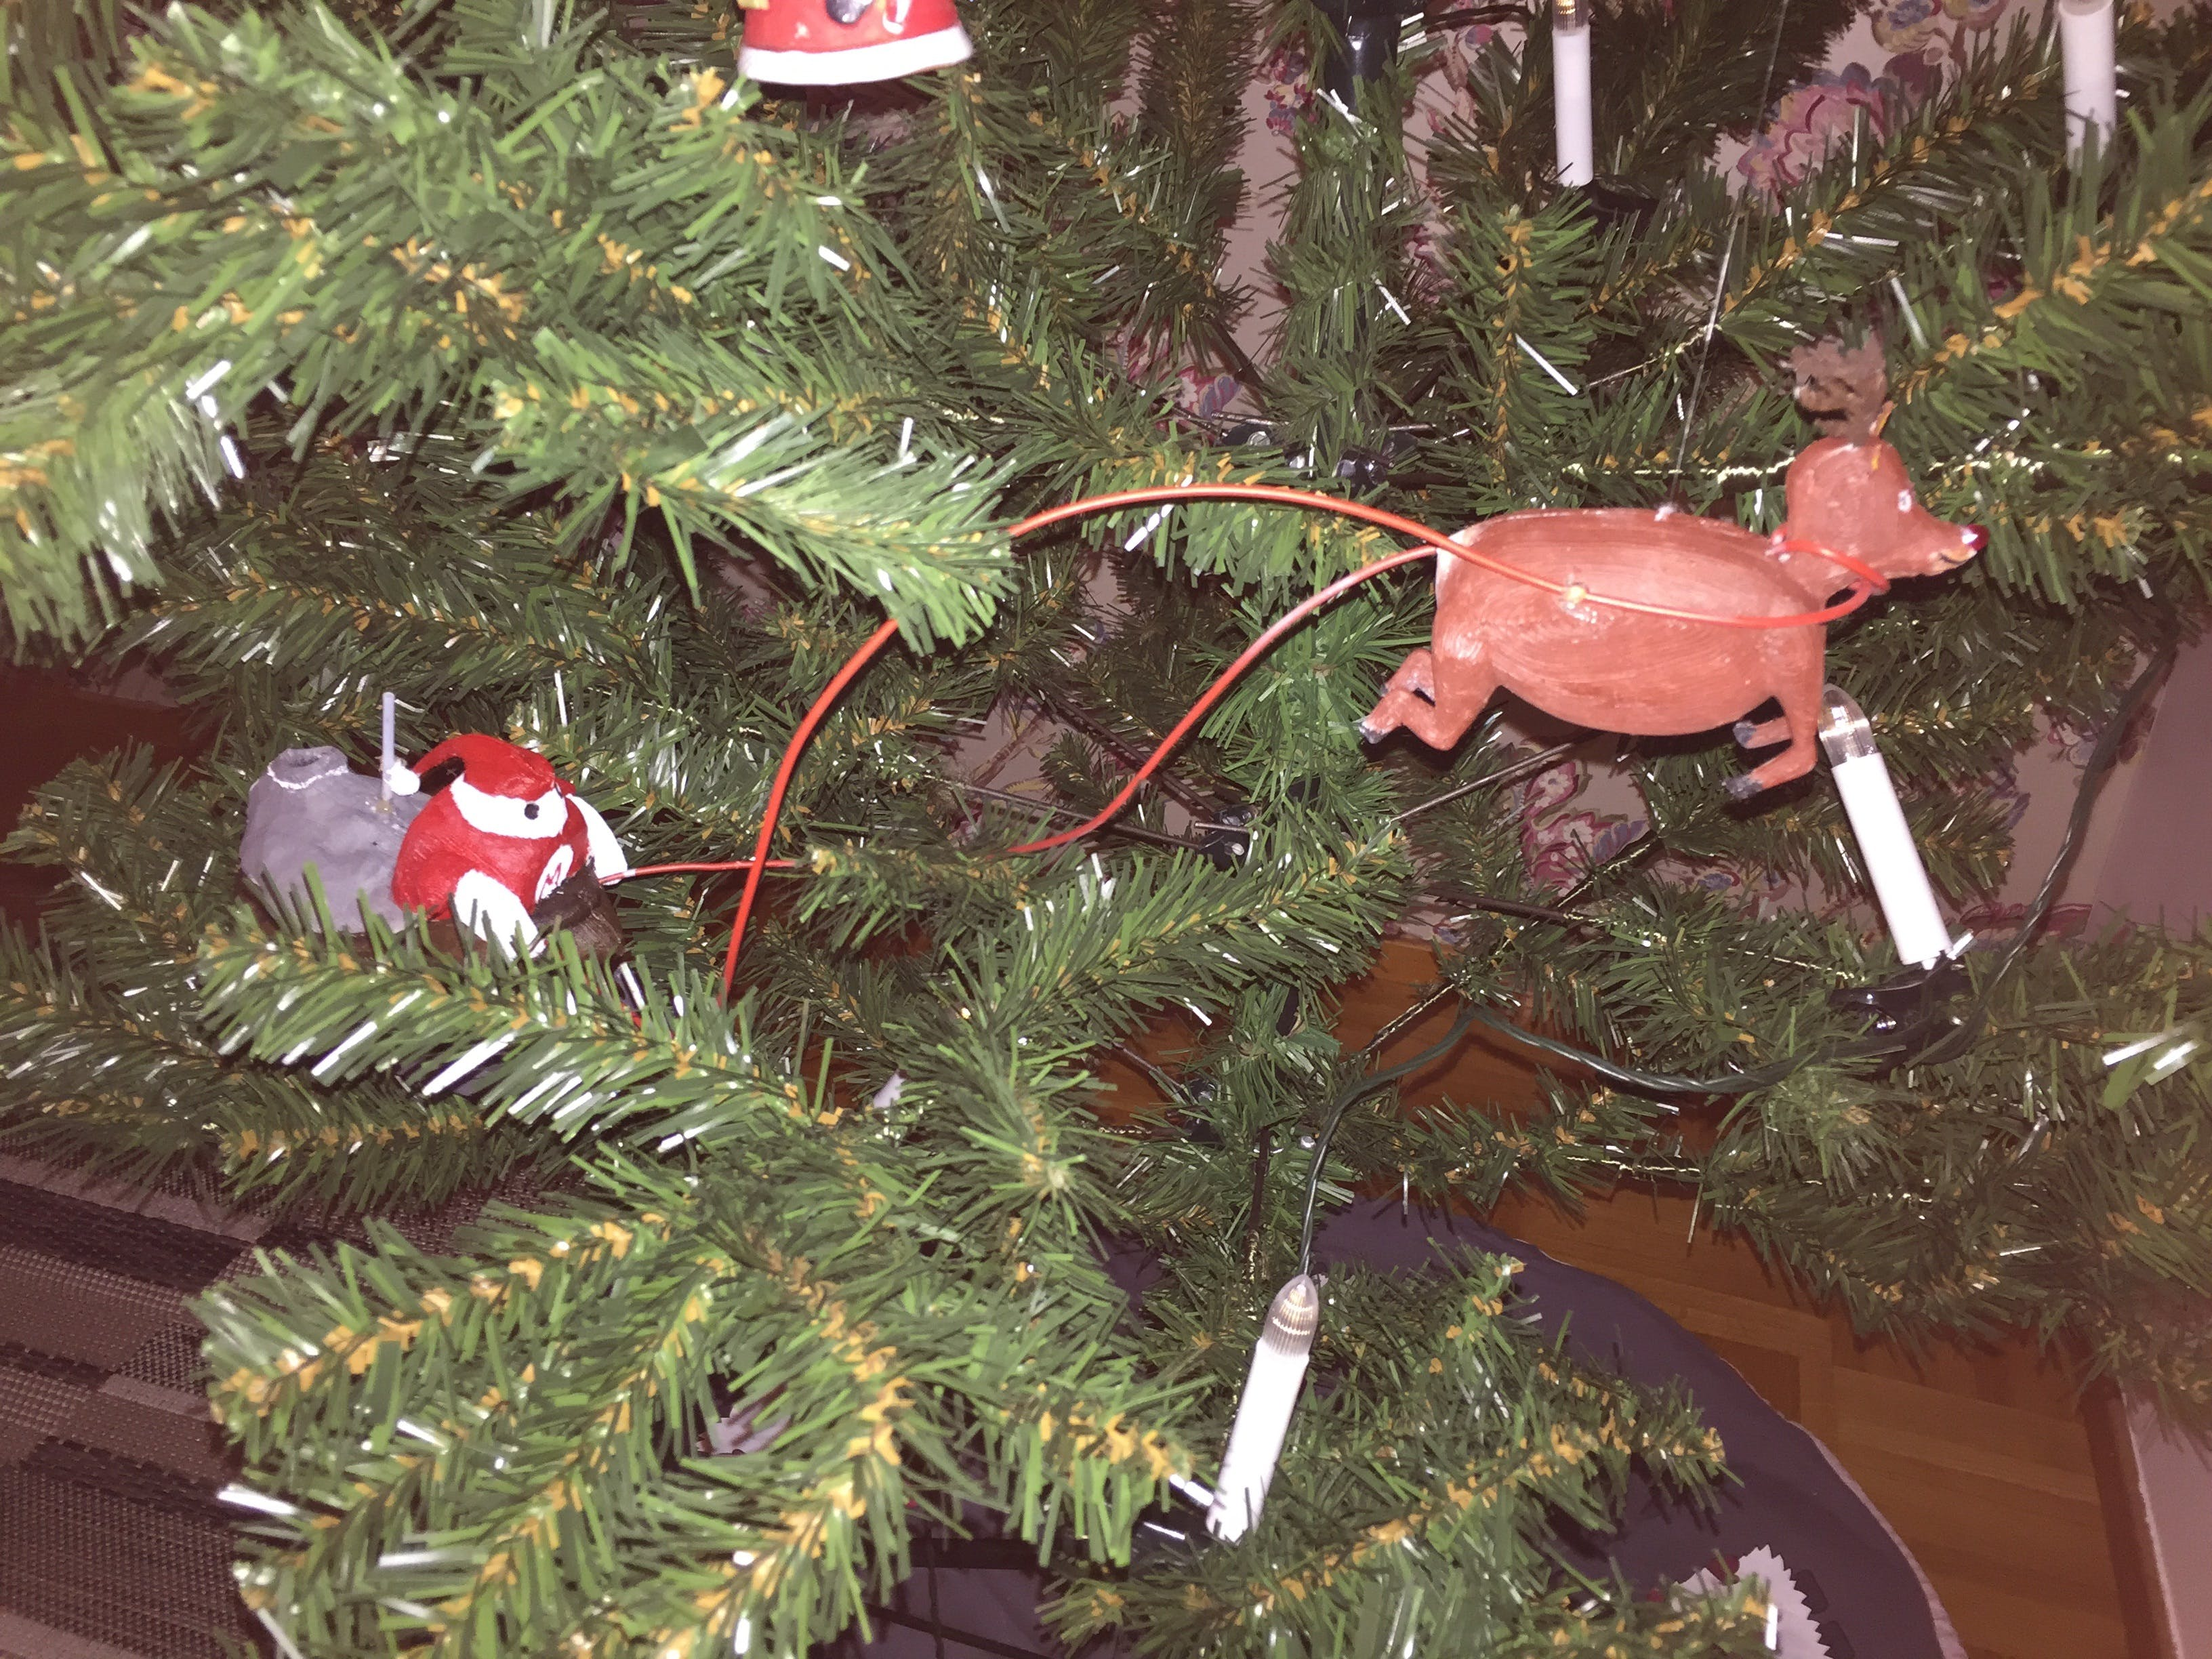 Flying around in the Christmas tree